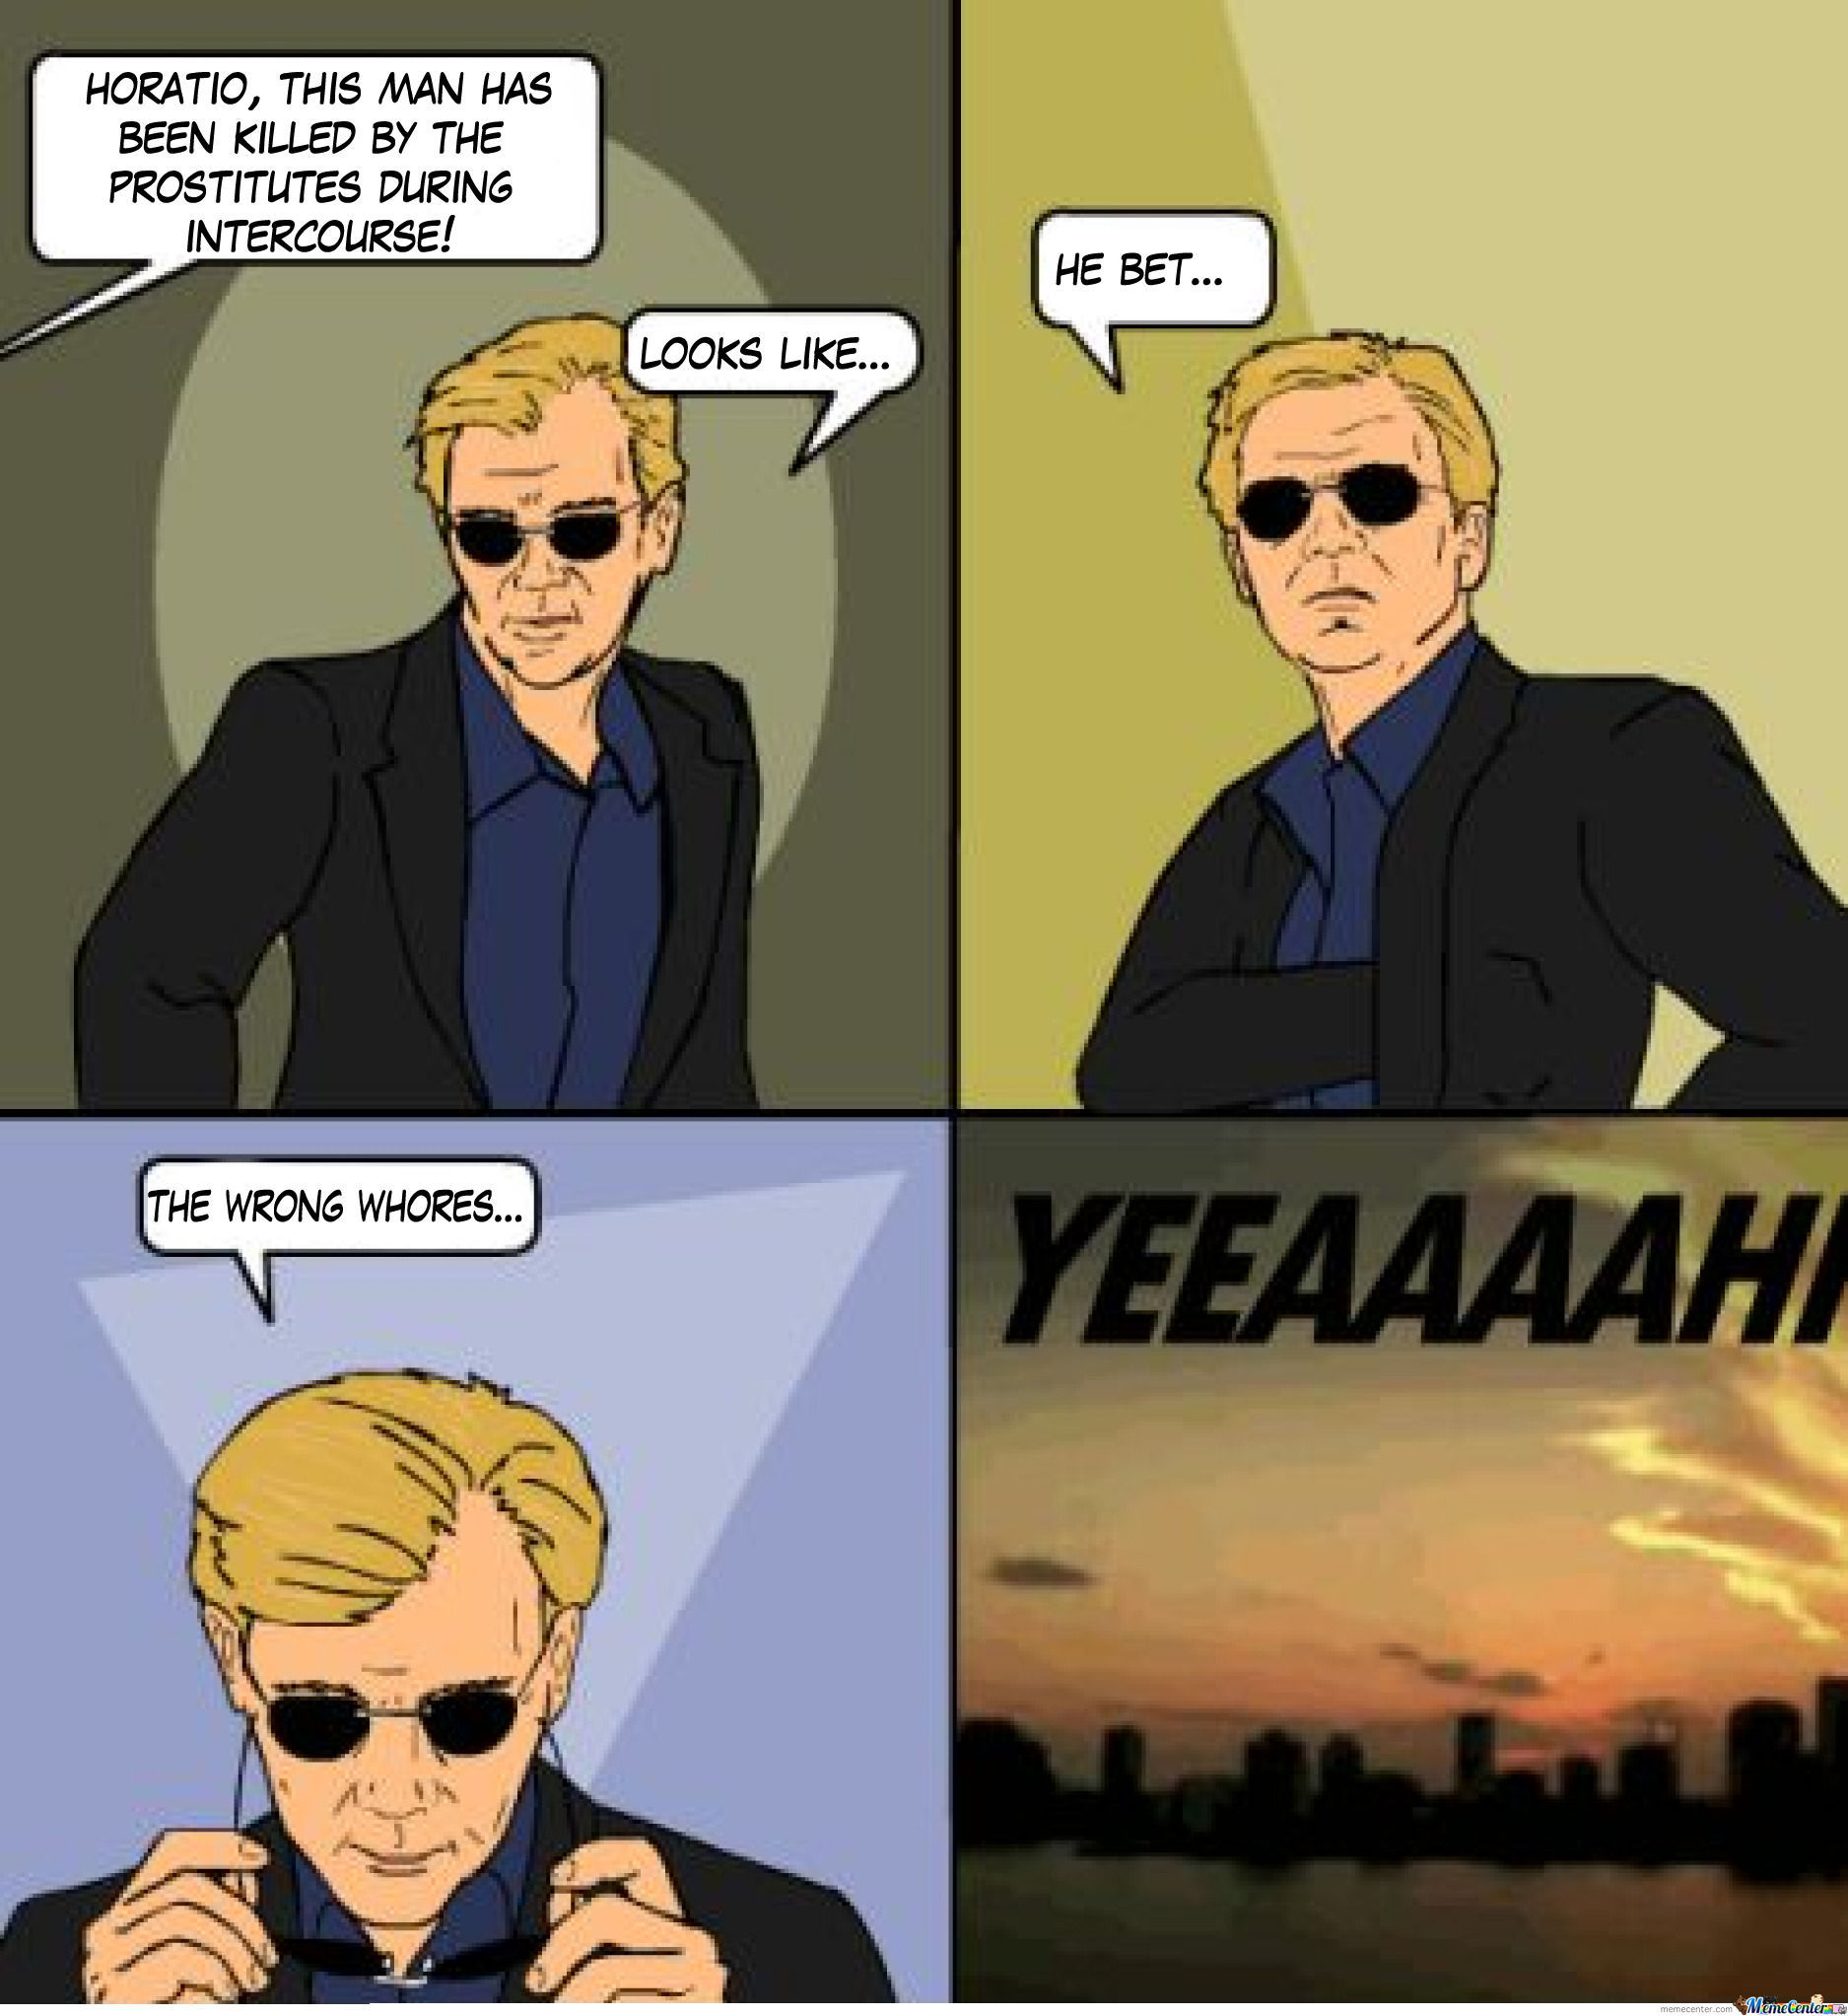 Horatio Strikes Again...